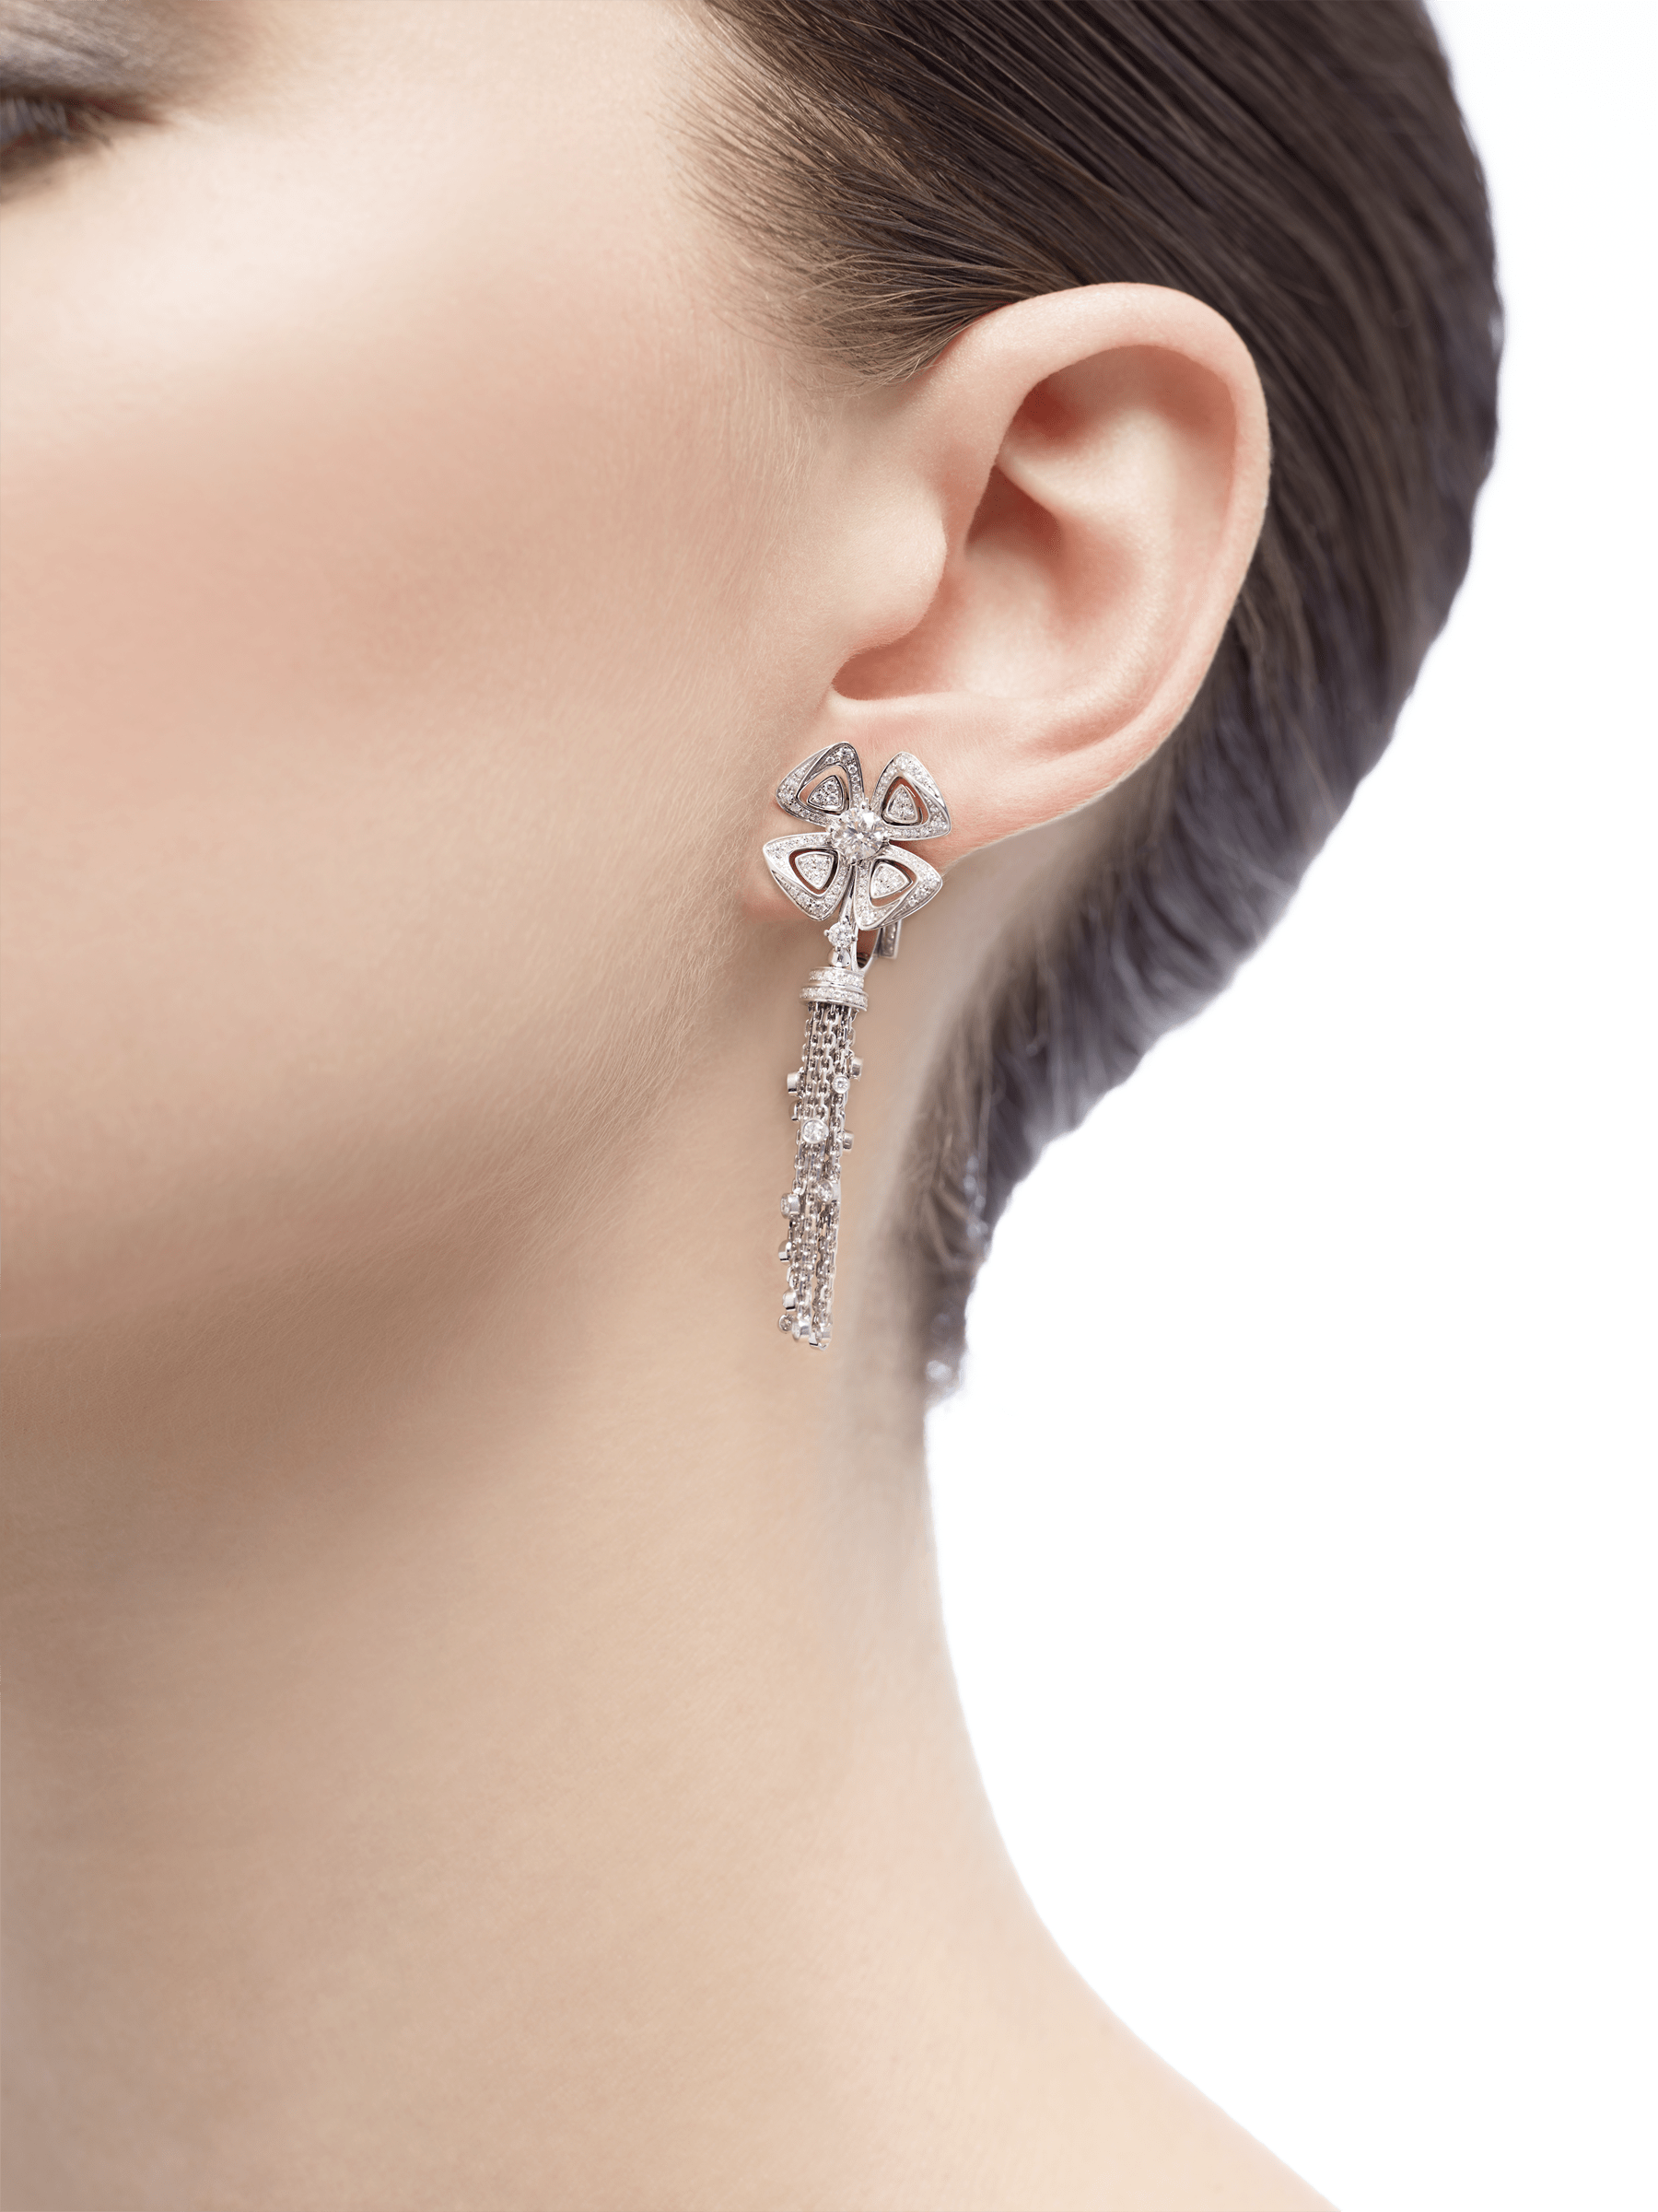 Fiorever 18 kt white gold earrings set with two central diamonds (0.30 ct each) and pavé diamonds (1.05 ct) 354528 image 3